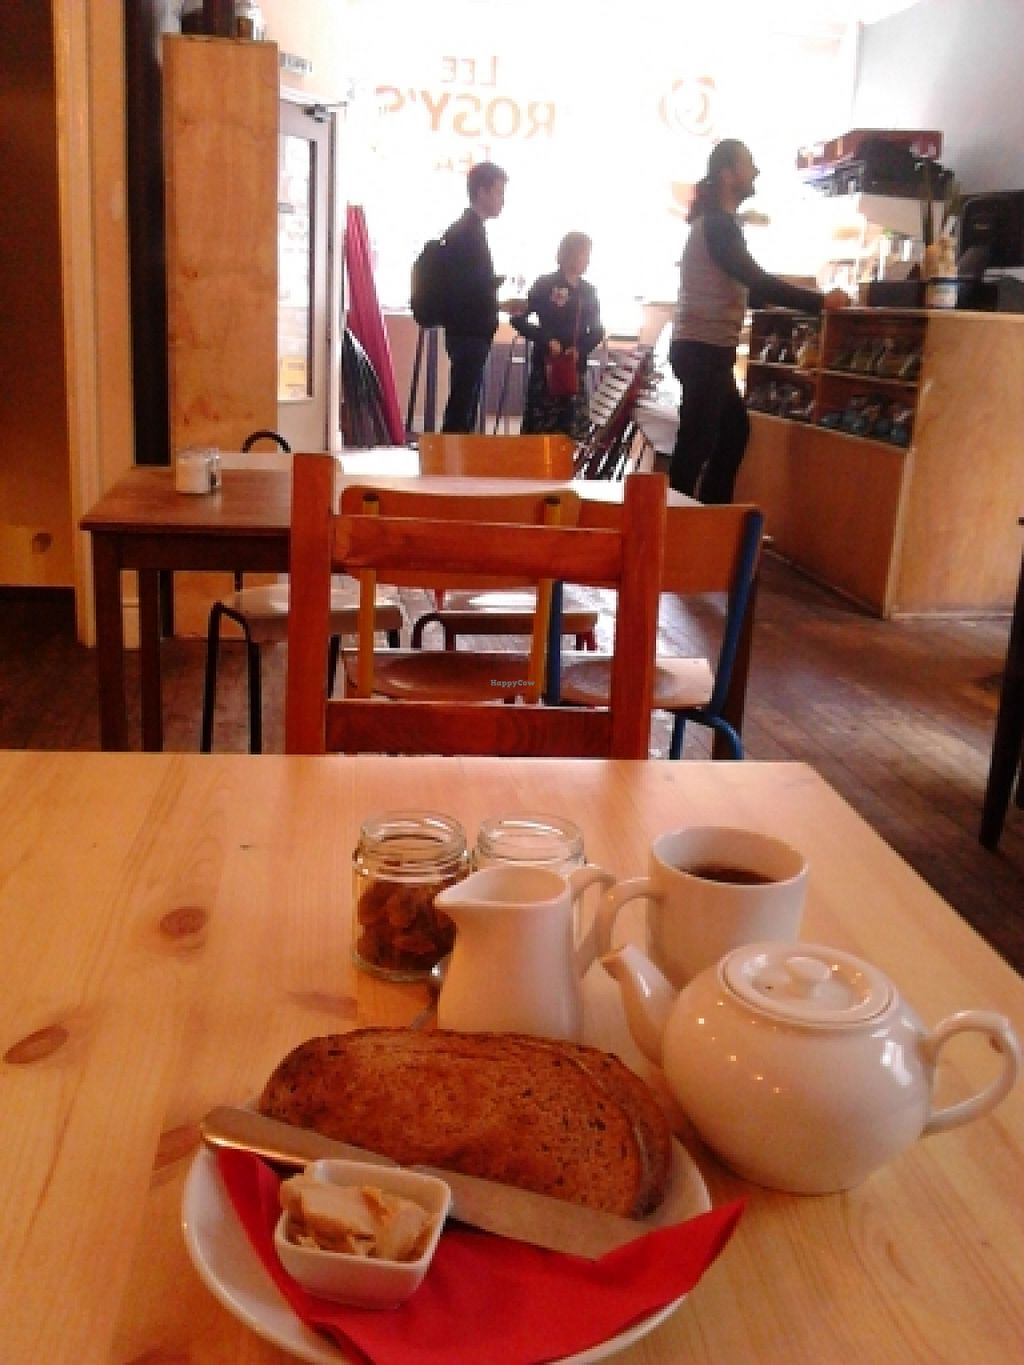 """Photo of Lee Rosy's Tea  by <a href=""""/members/profile/Purple_Porcupine"""">Purple_Porcupine</a> <br/>Breakfast! <br/> May 29, 2016  - <a href='/contact/abuse/image/69305/151293'>Report</a>"""